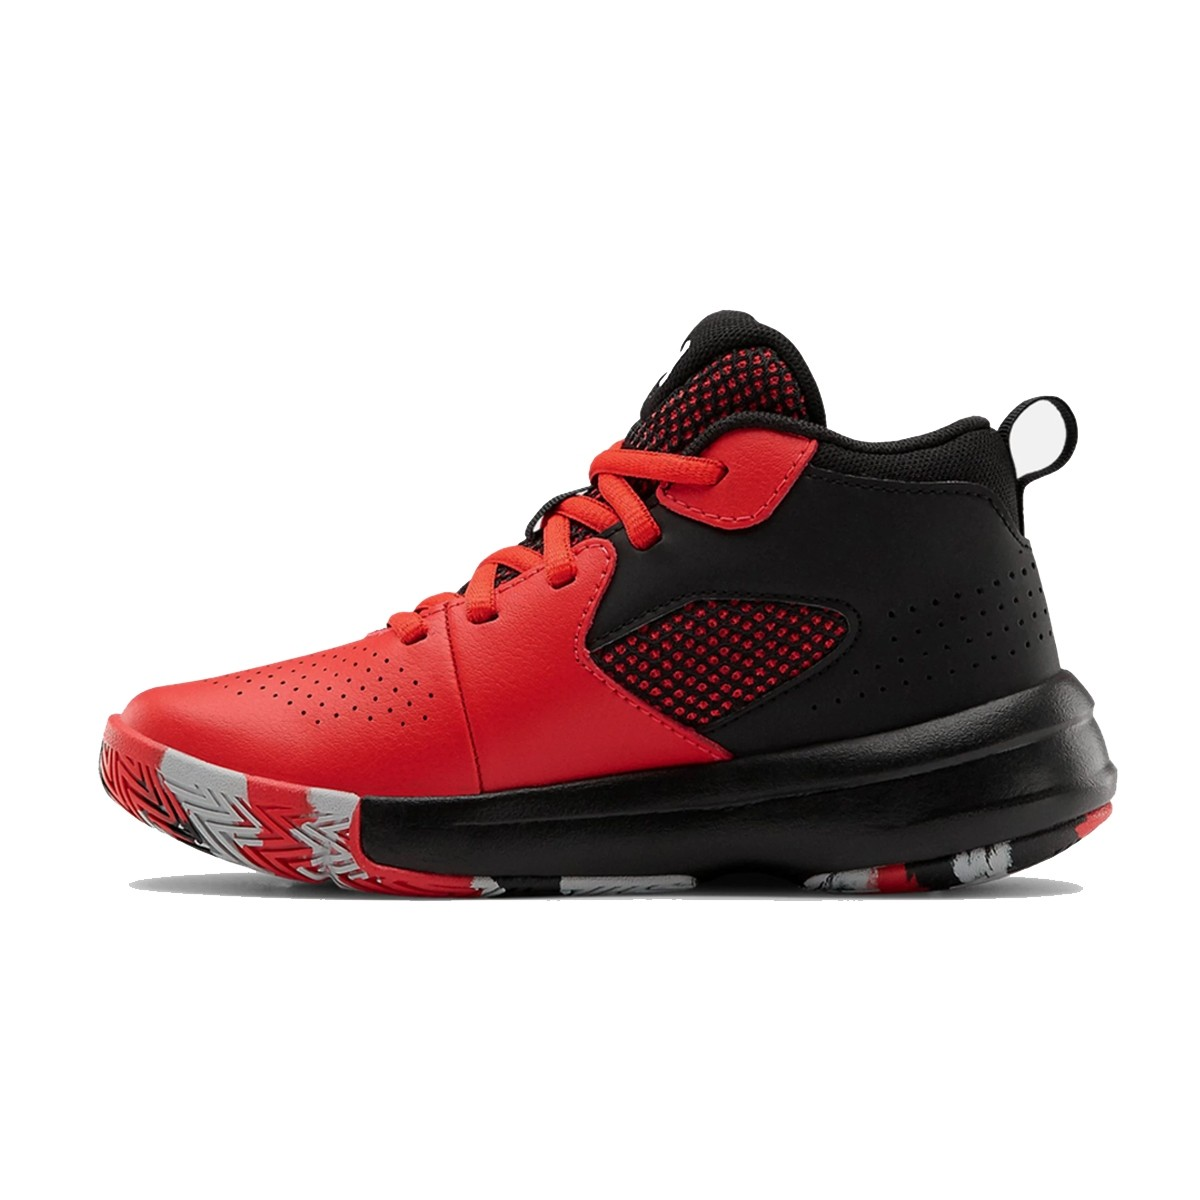 Under Armour PS Lockdown 5 'Bred'-3023534-601